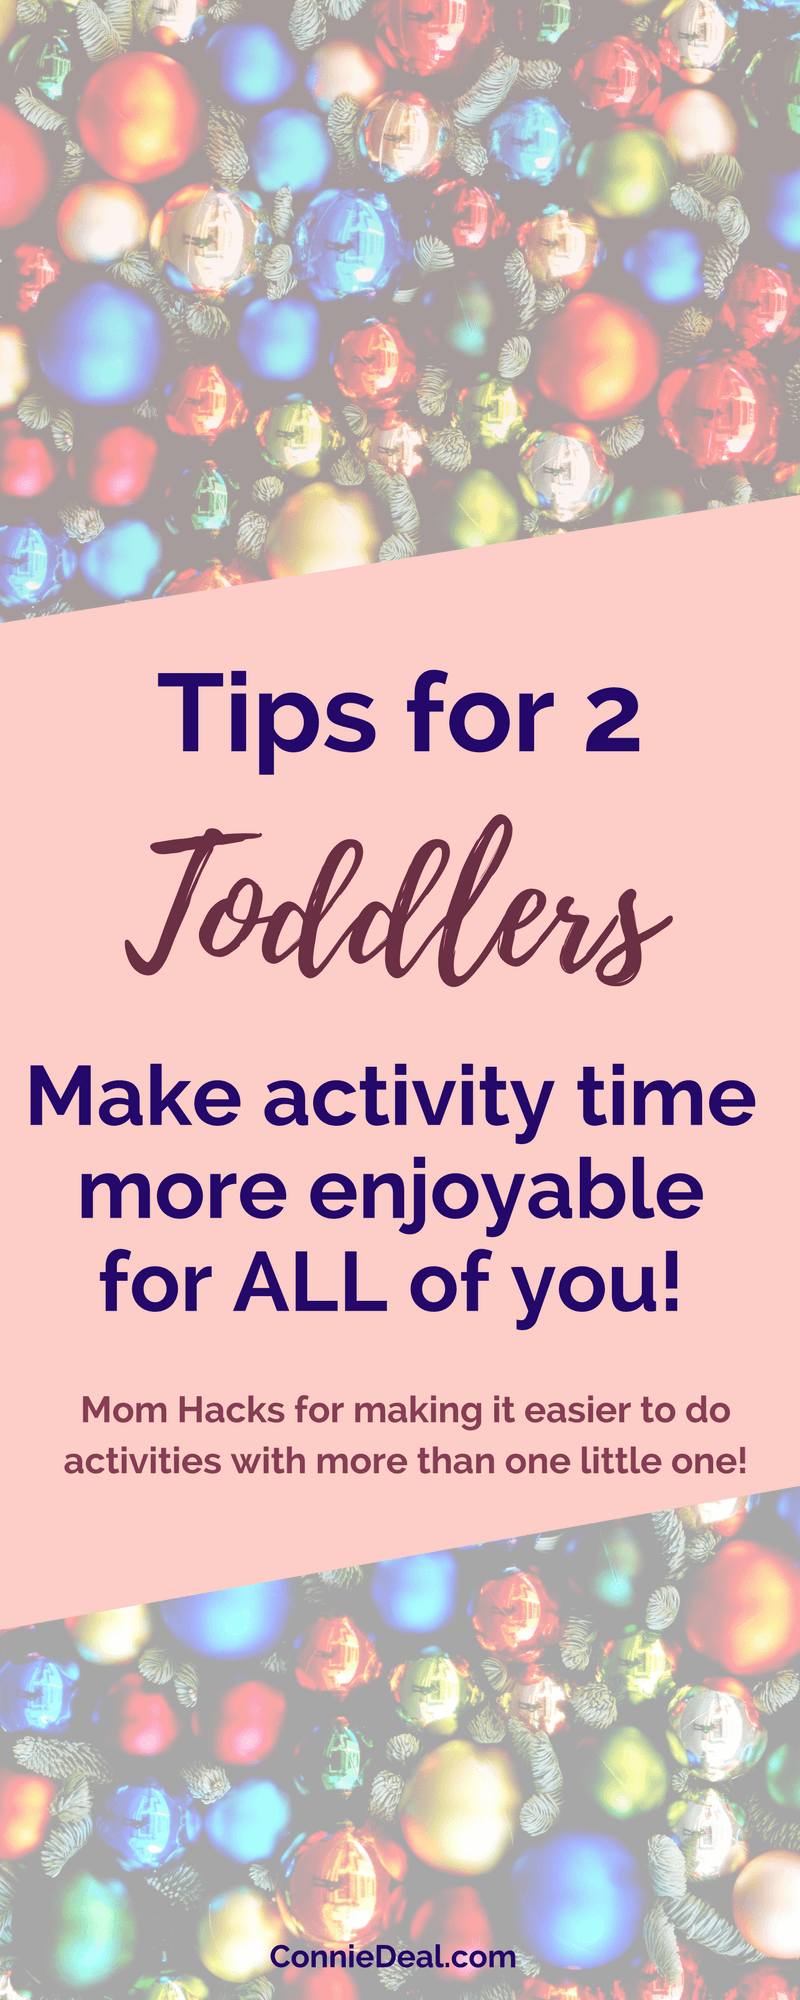 Does the thought of trying those cute new #toddlercrafts scare you? Don't let it! Read these quick tips to help make doing #toddlerart and crafts easier and less stressful. Includes an optional FREE Toddler Activity Guide! #holidays #toddleractivities